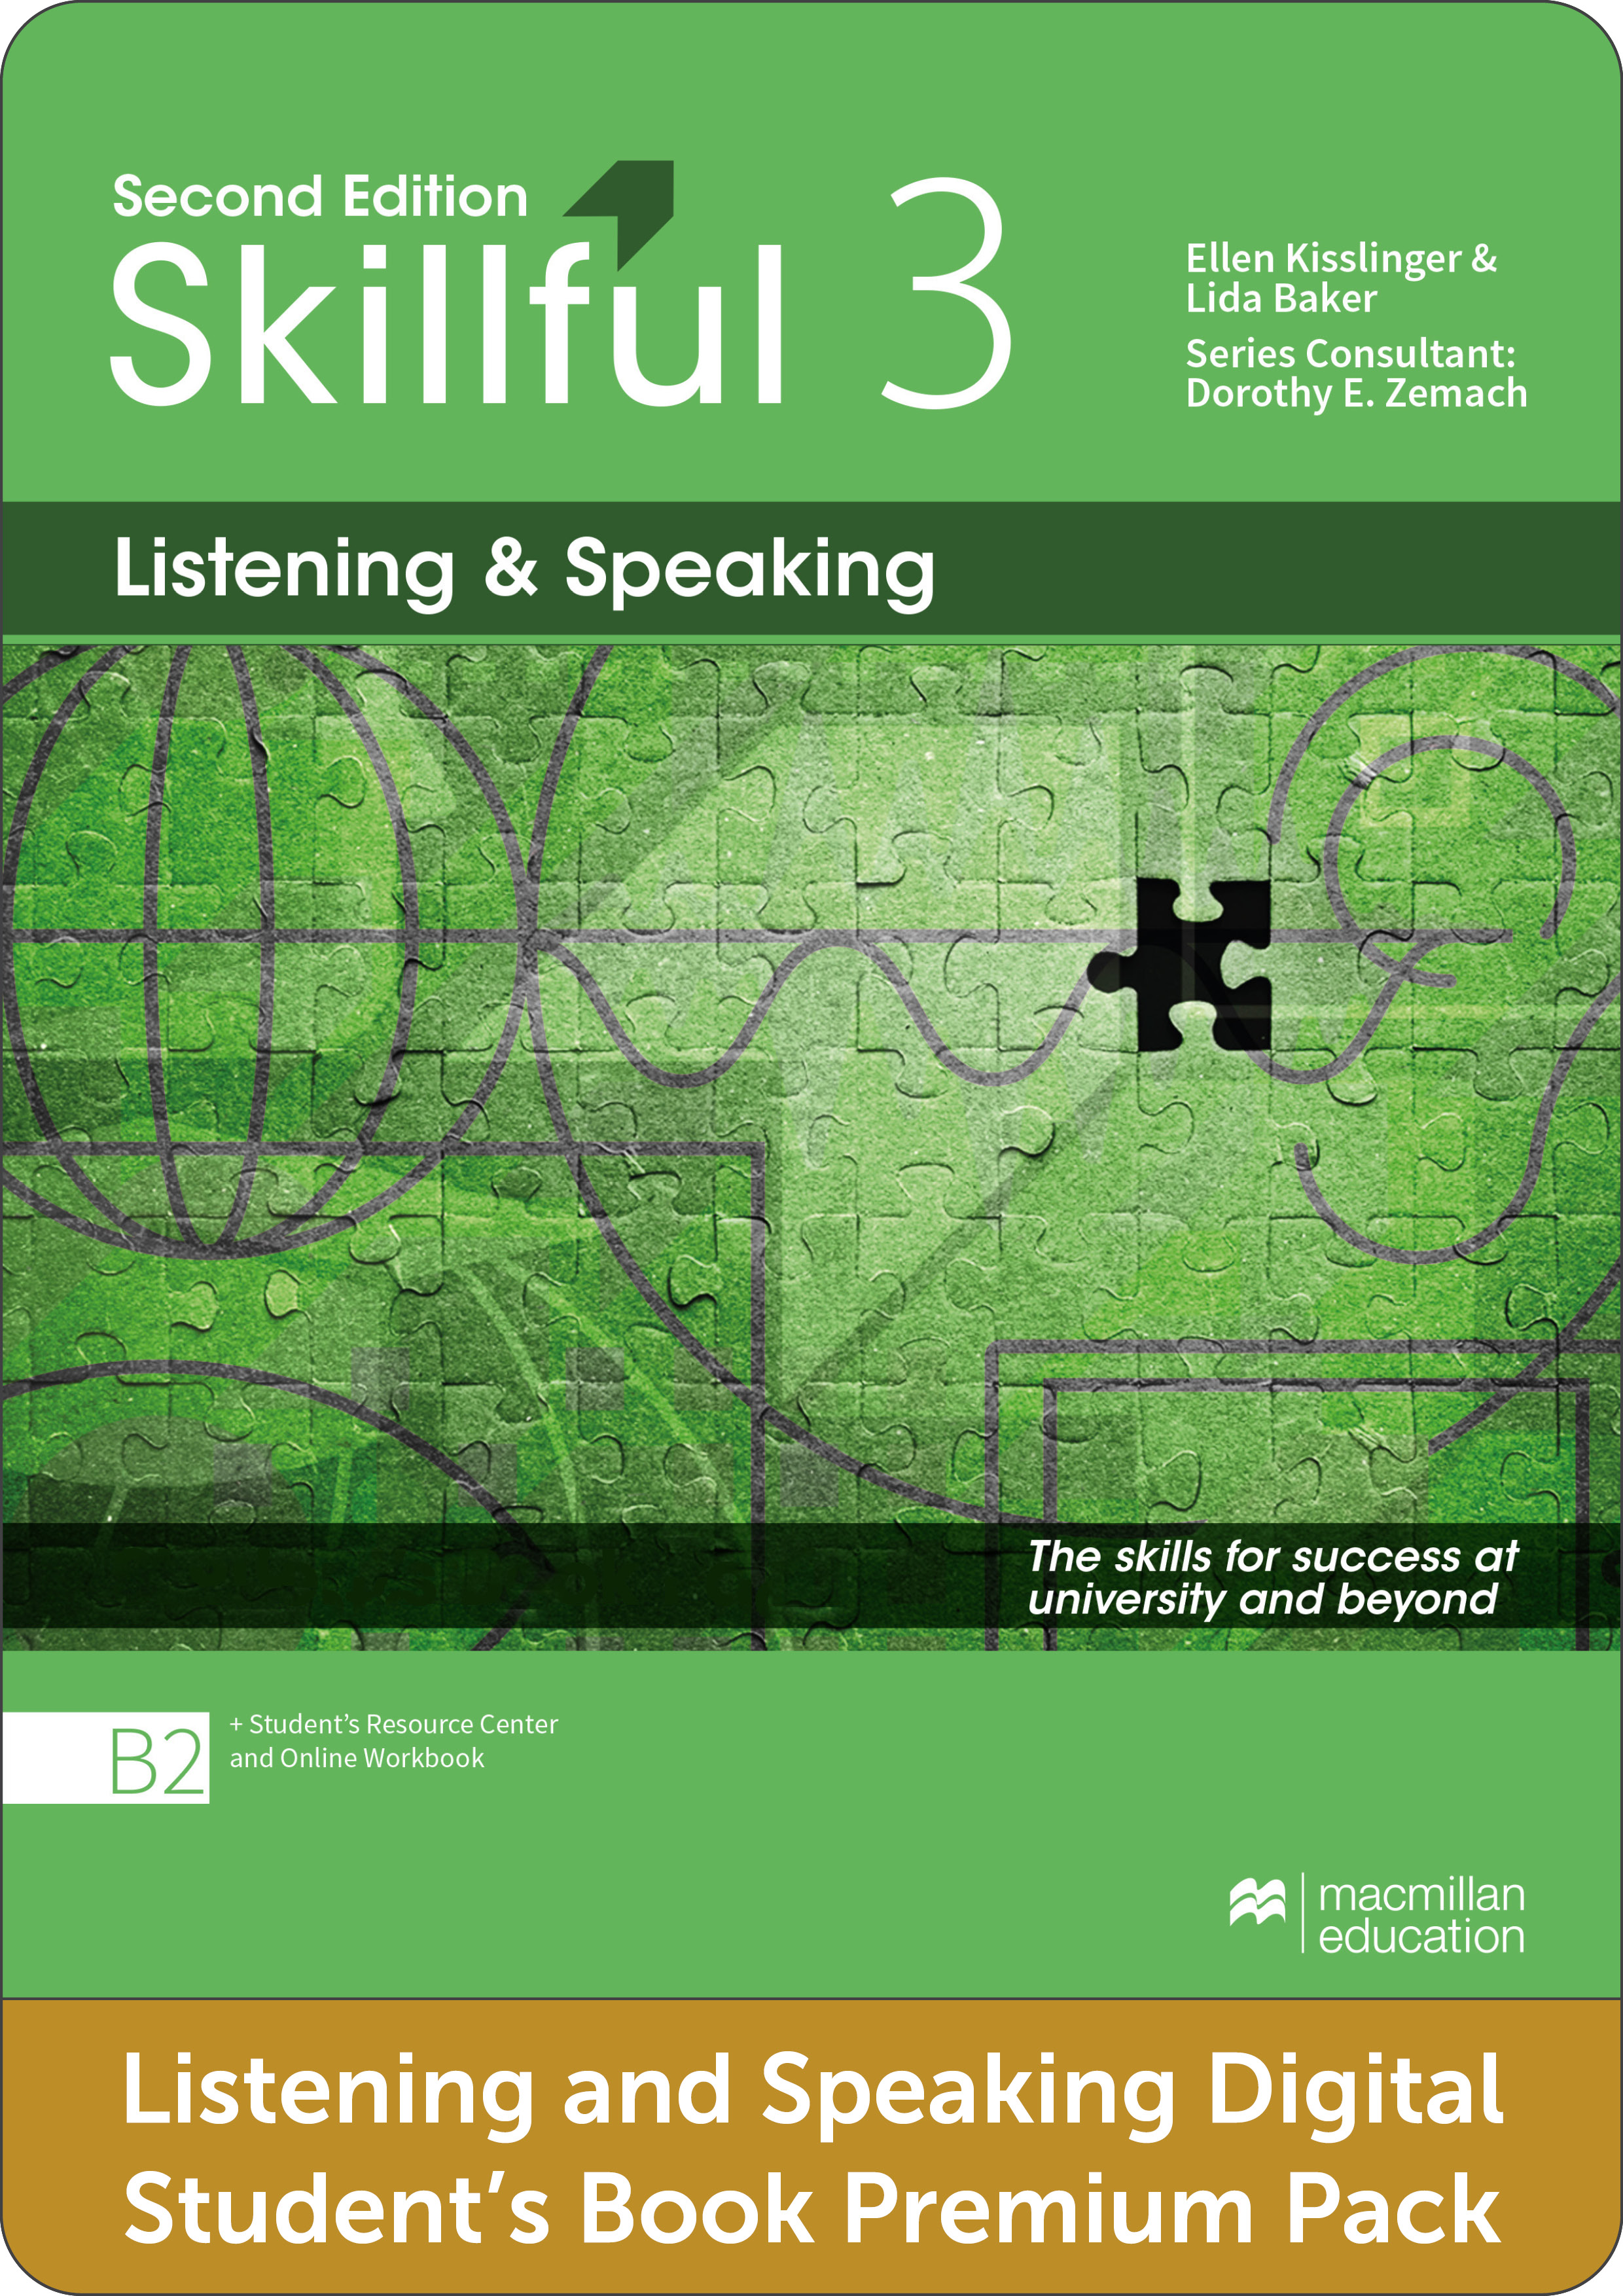 Skillful Second Edition Level 3 Listening and Speaking Premium Digital Student's Book Pack